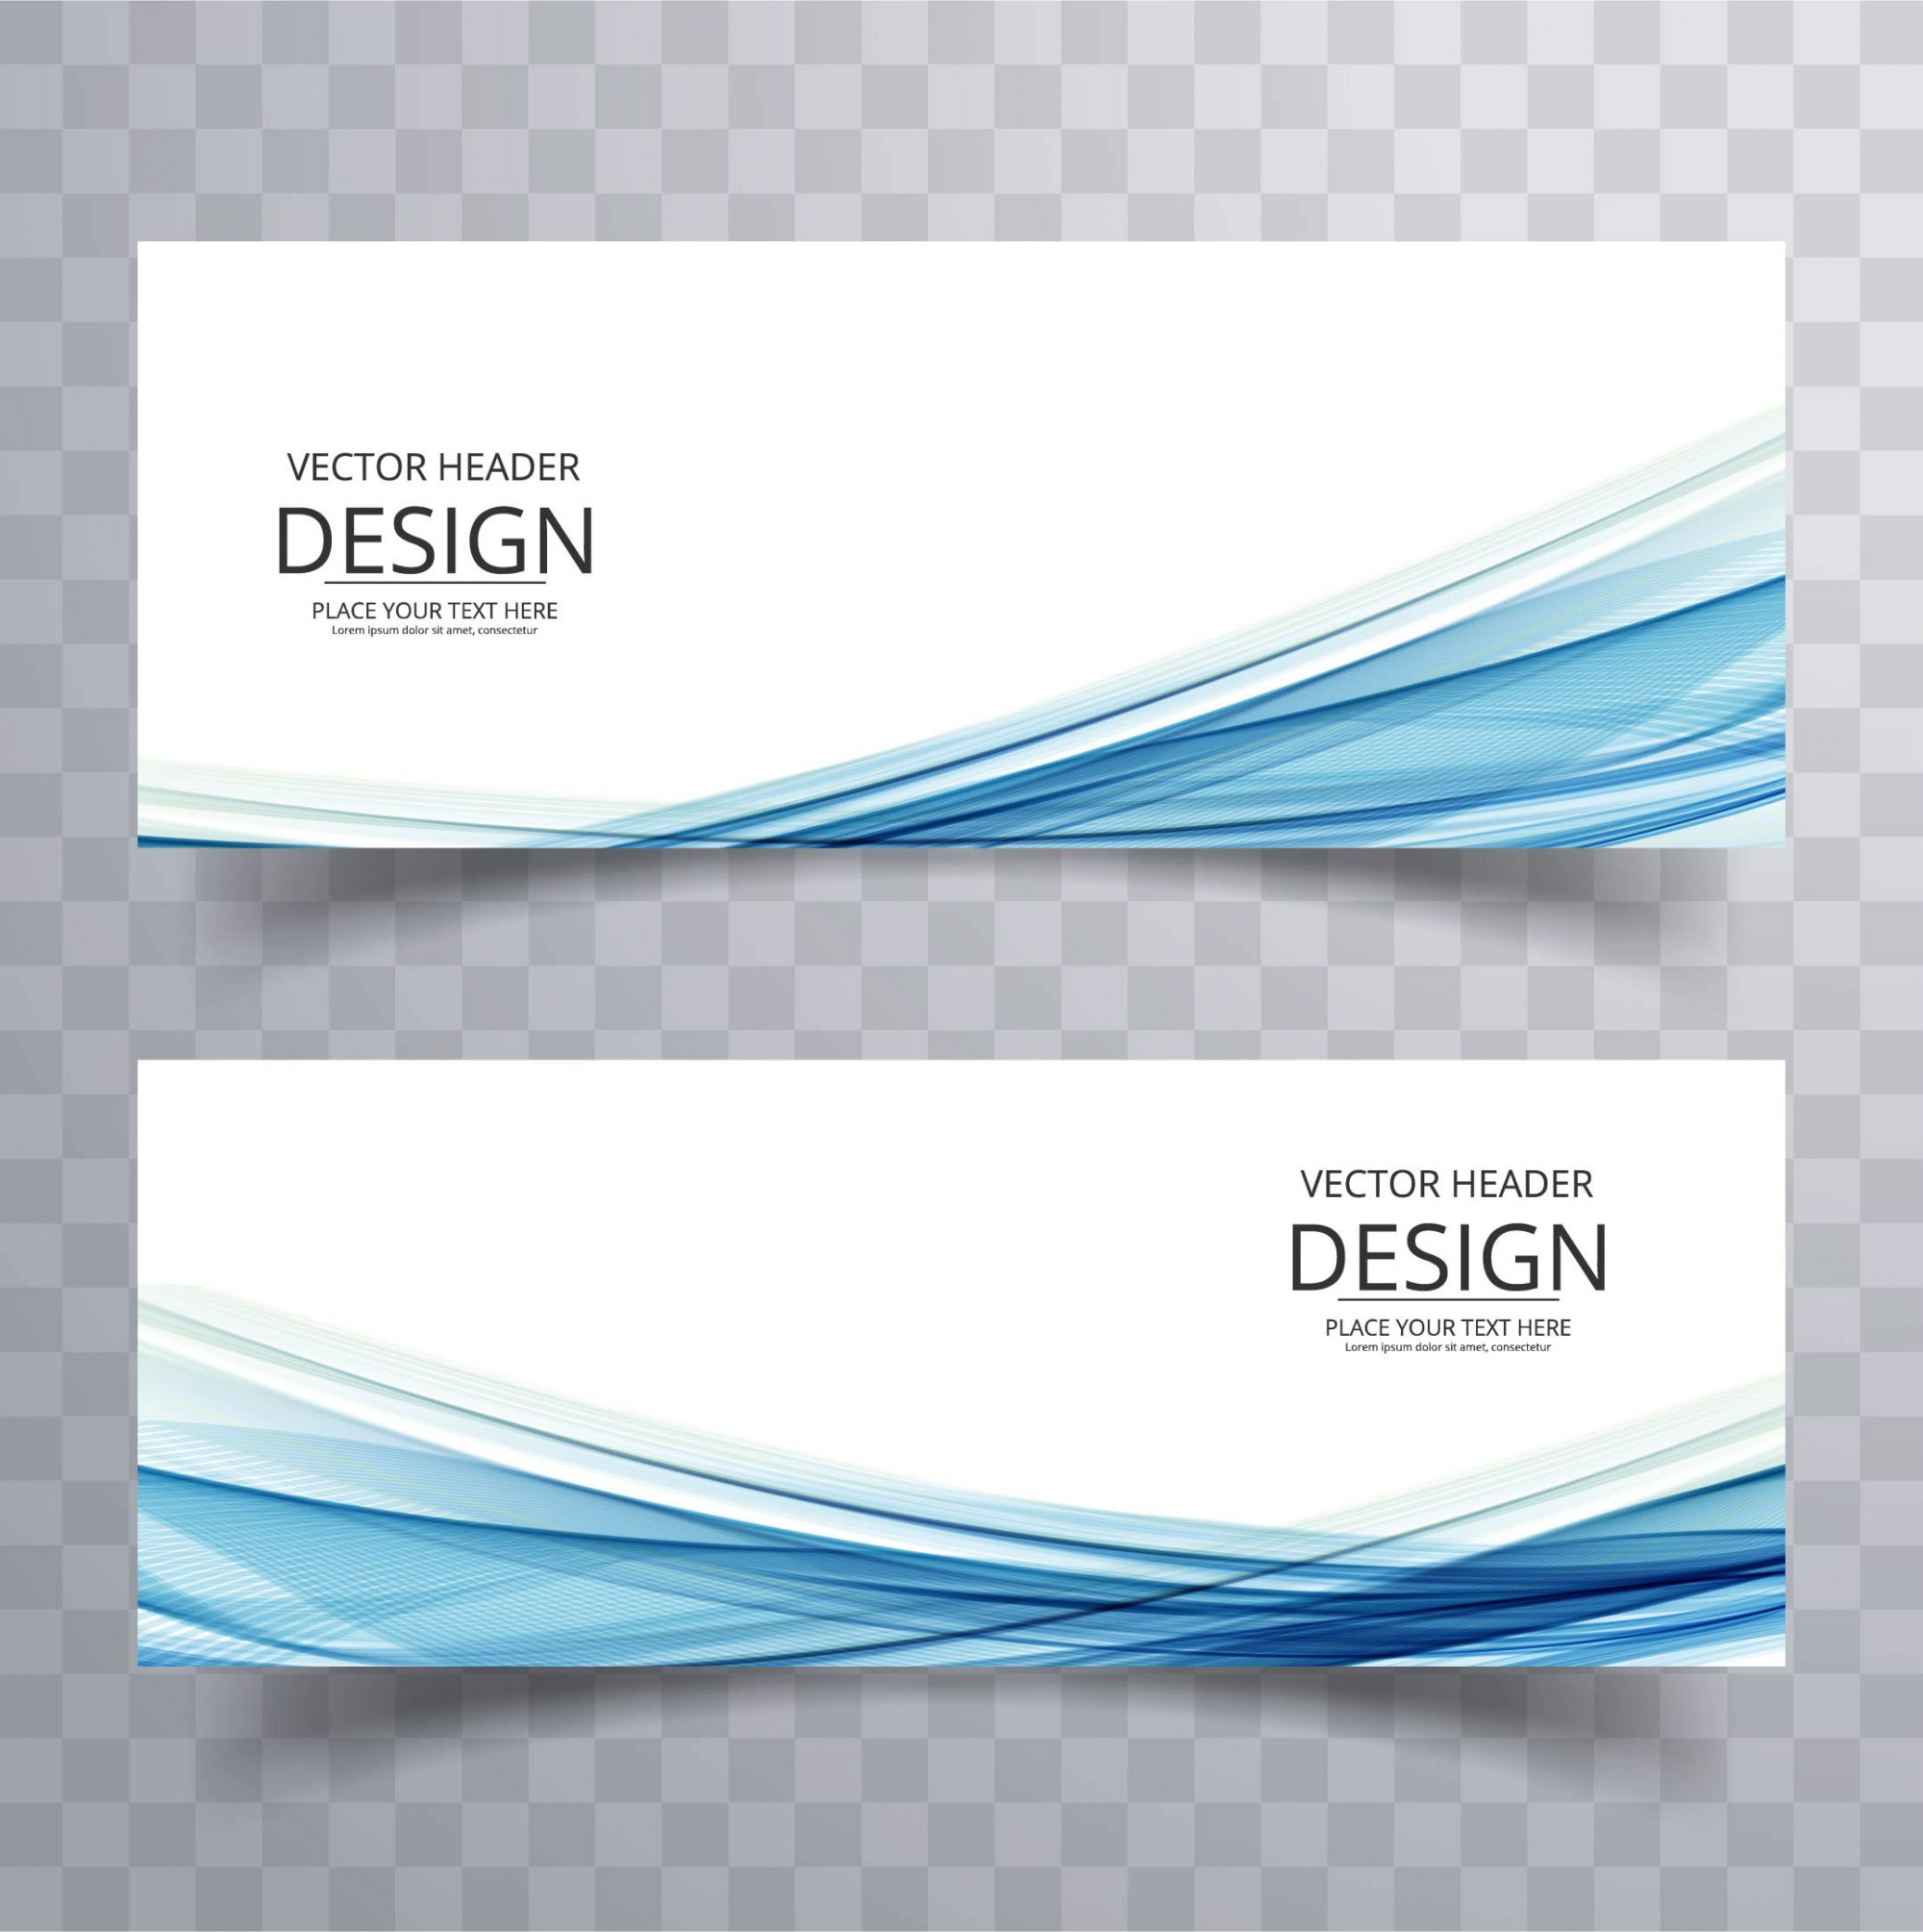 Banners with blue wavy shapes